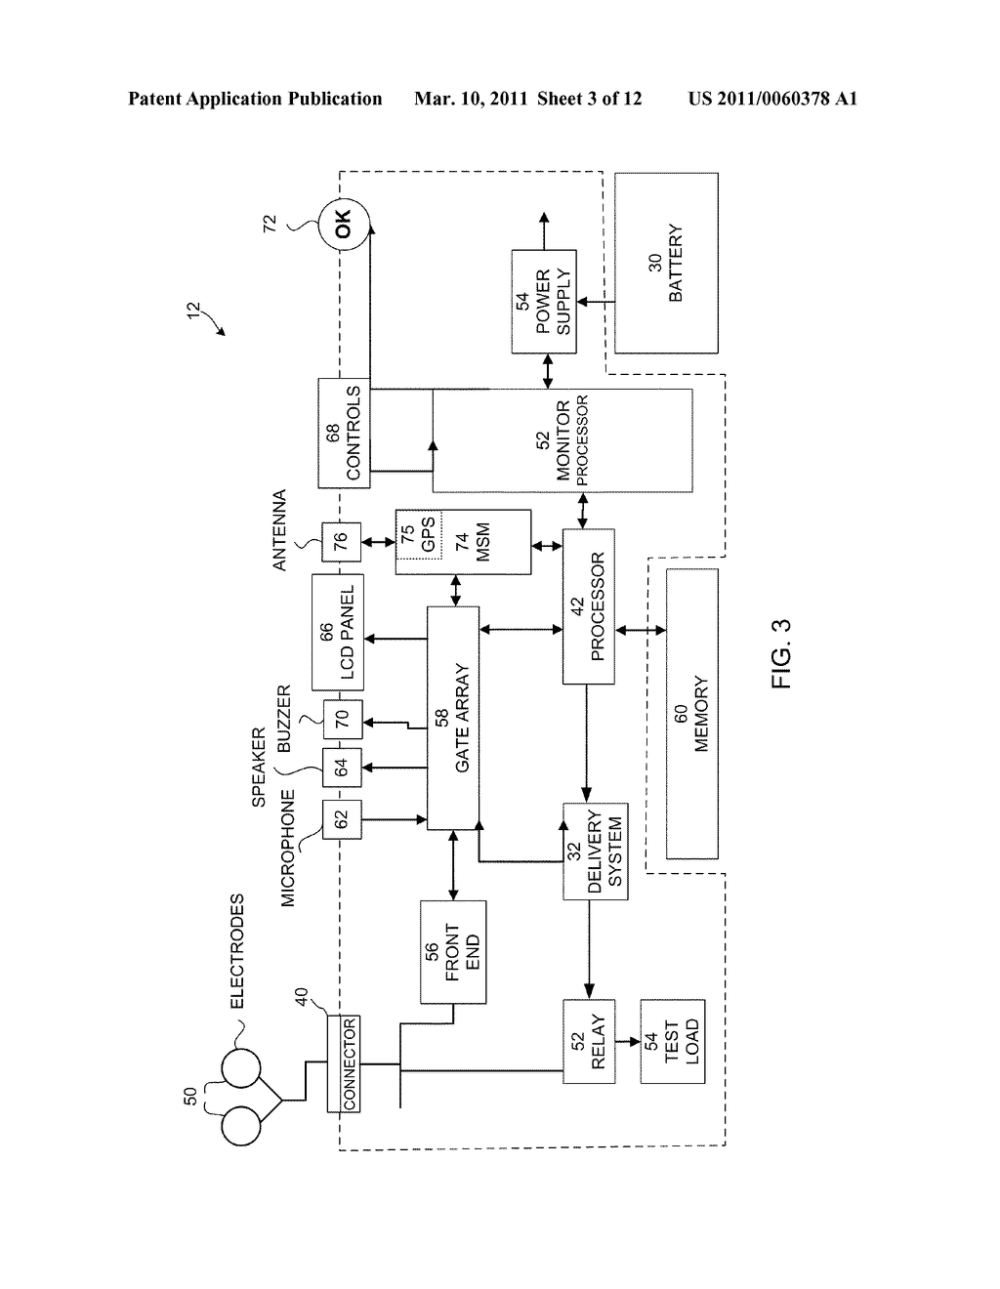 medium resolution of automated external defibrillator device with integrated wireless modem diagram schematic and image 04